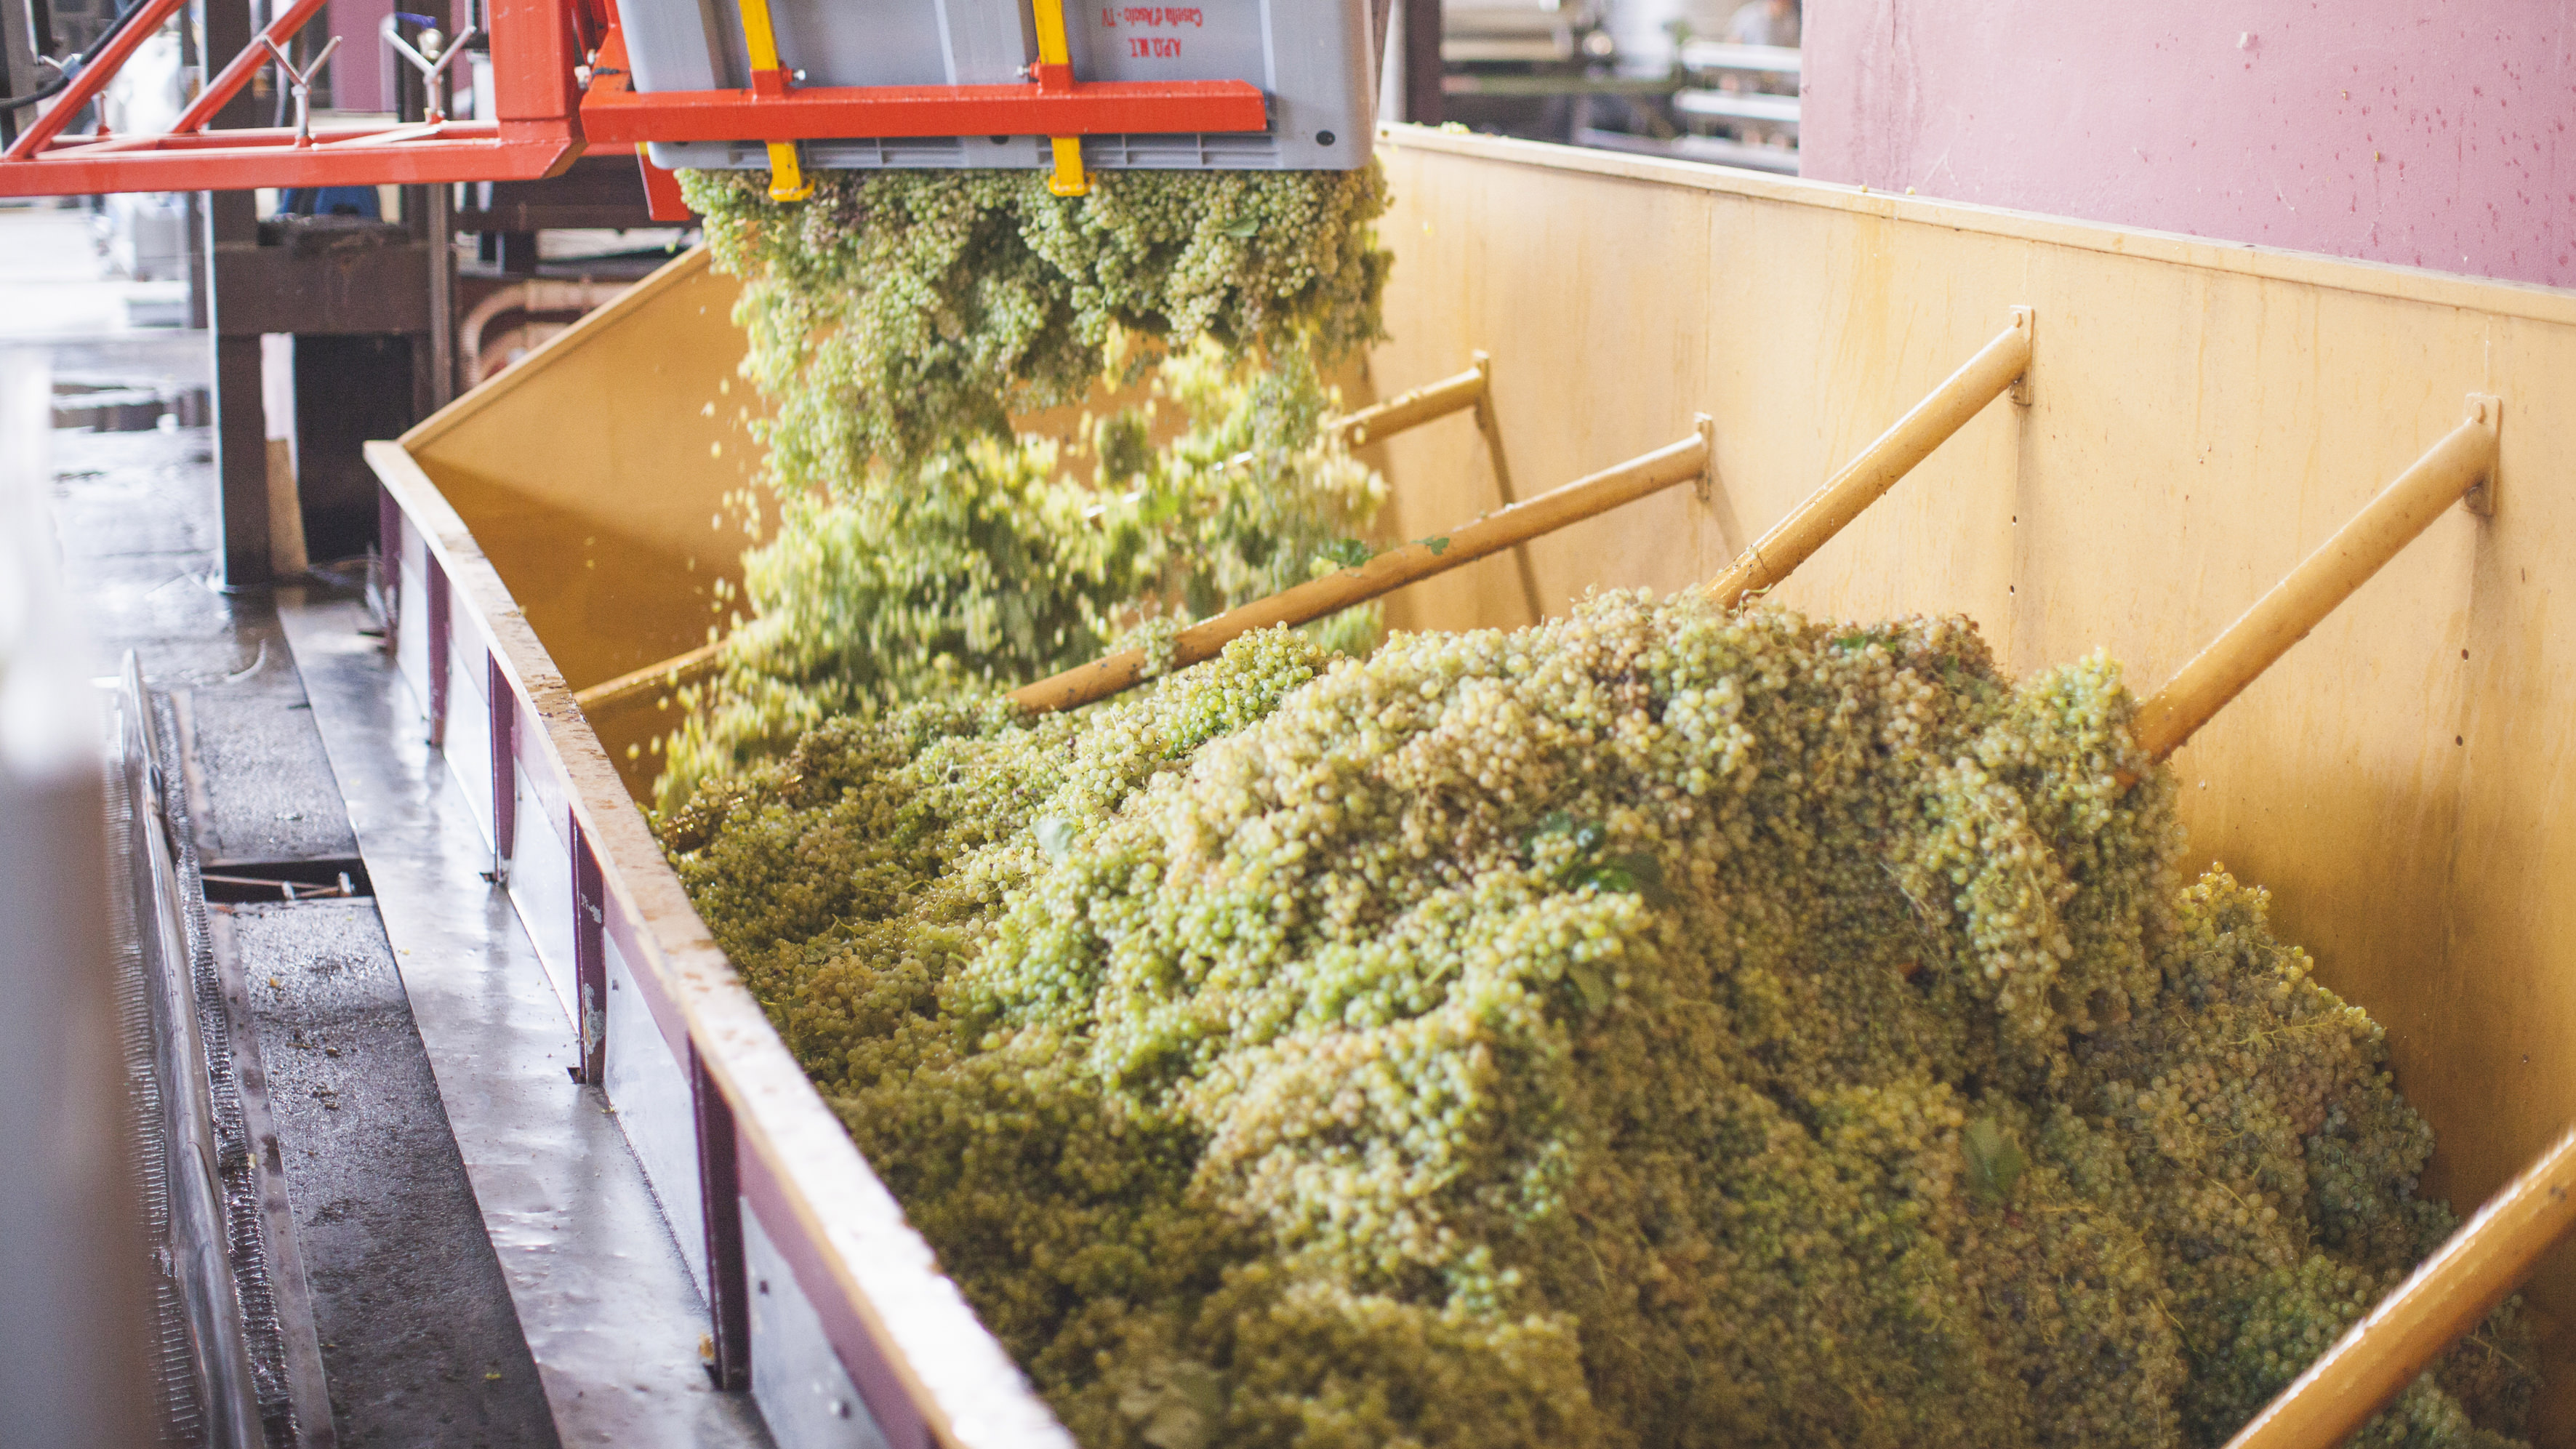 Crushing the grapes after the harvest.